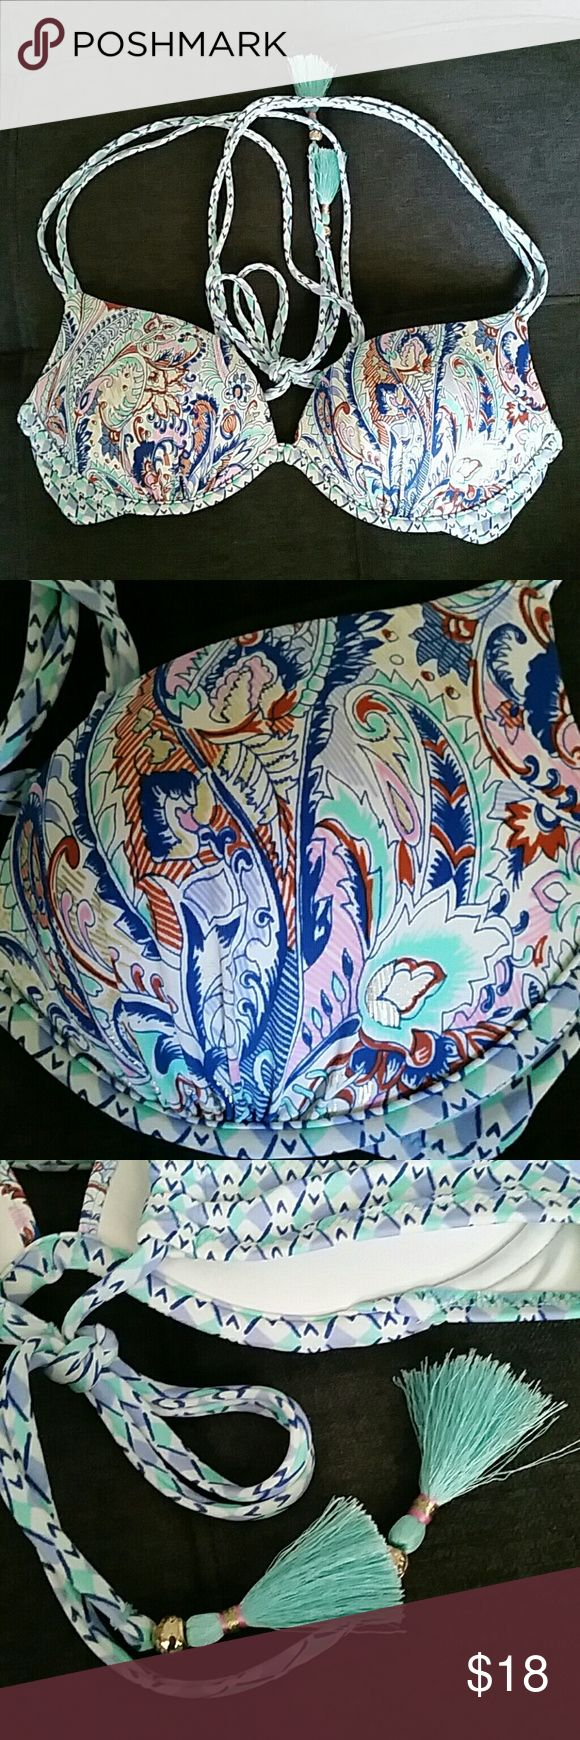 NWOT Victoria's Secret Bikini Top - 34A Never worn after the tags were cut off. Size 34A and heavily padded. Straps can be tied in multiple ways. Top only. Victoria's Secret Swim Bikinis